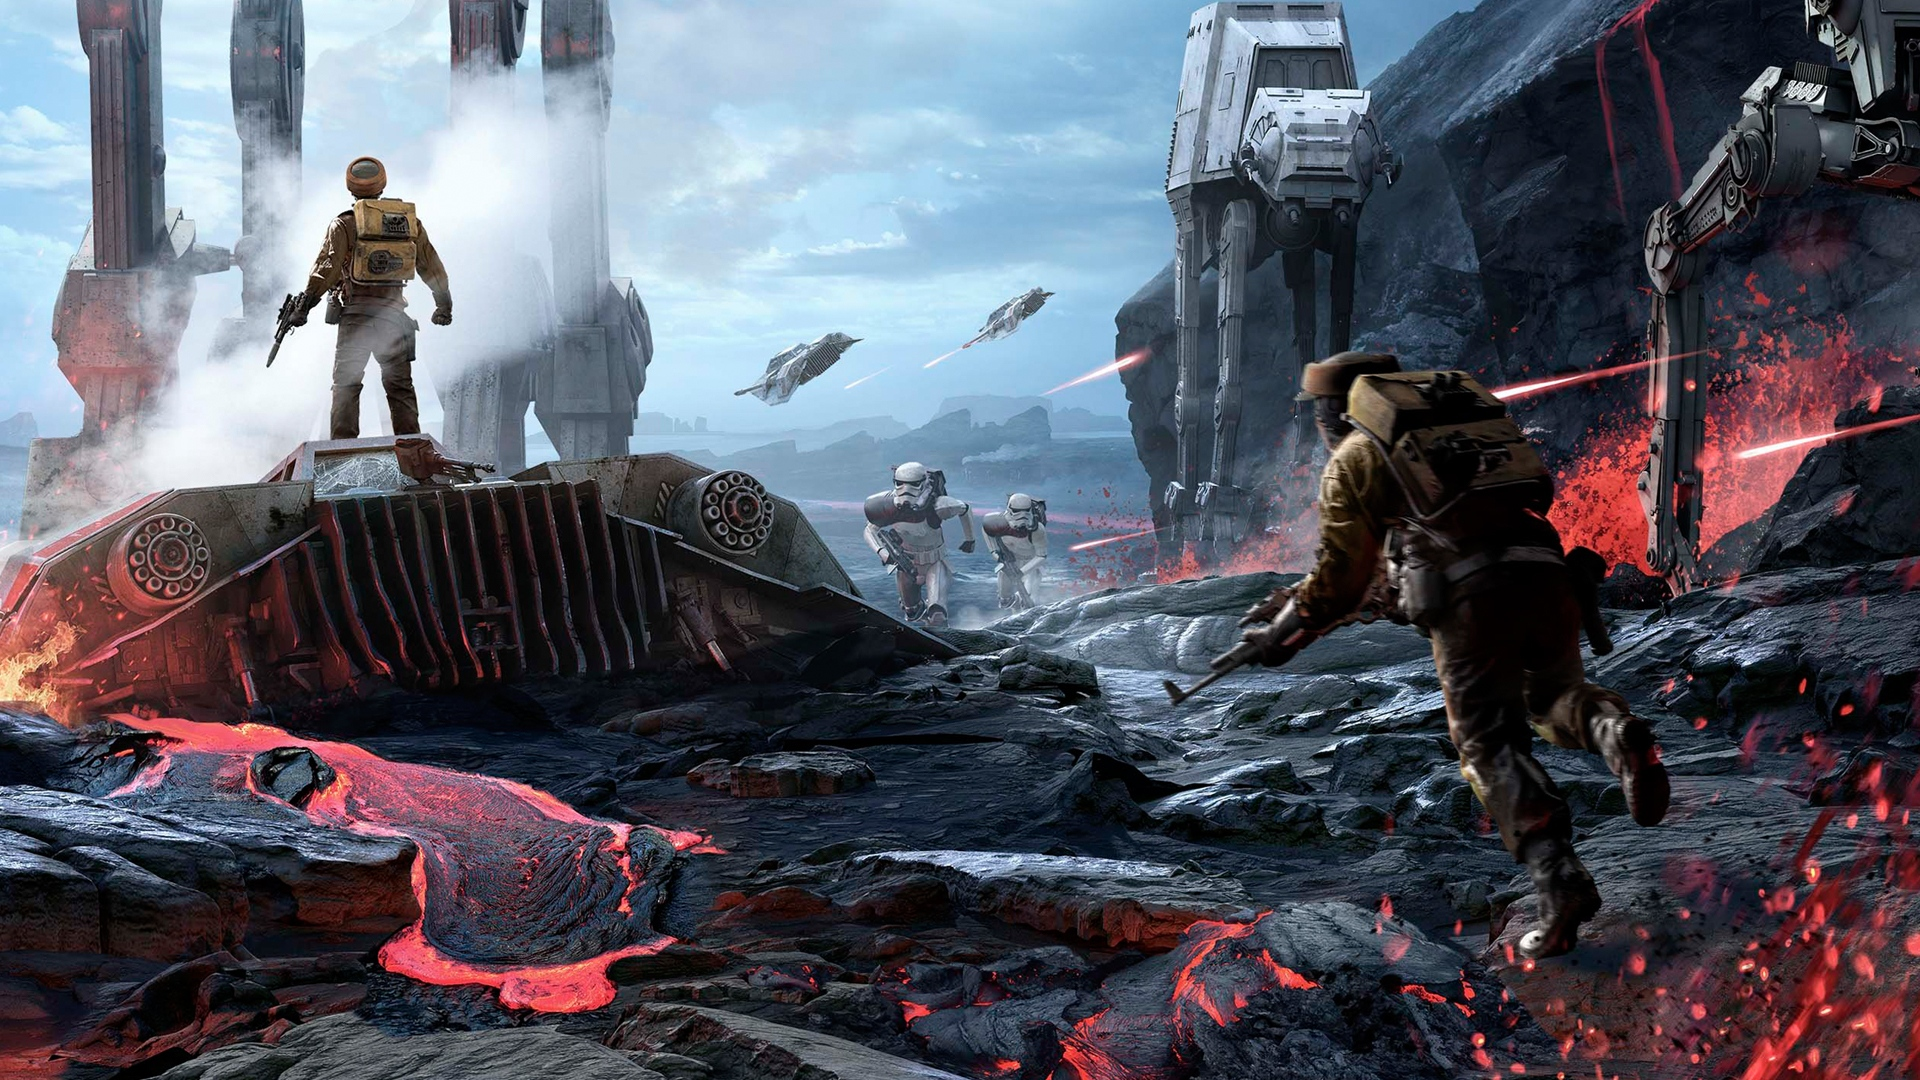 star wars battlefront (2015) full hd wallpaper and background